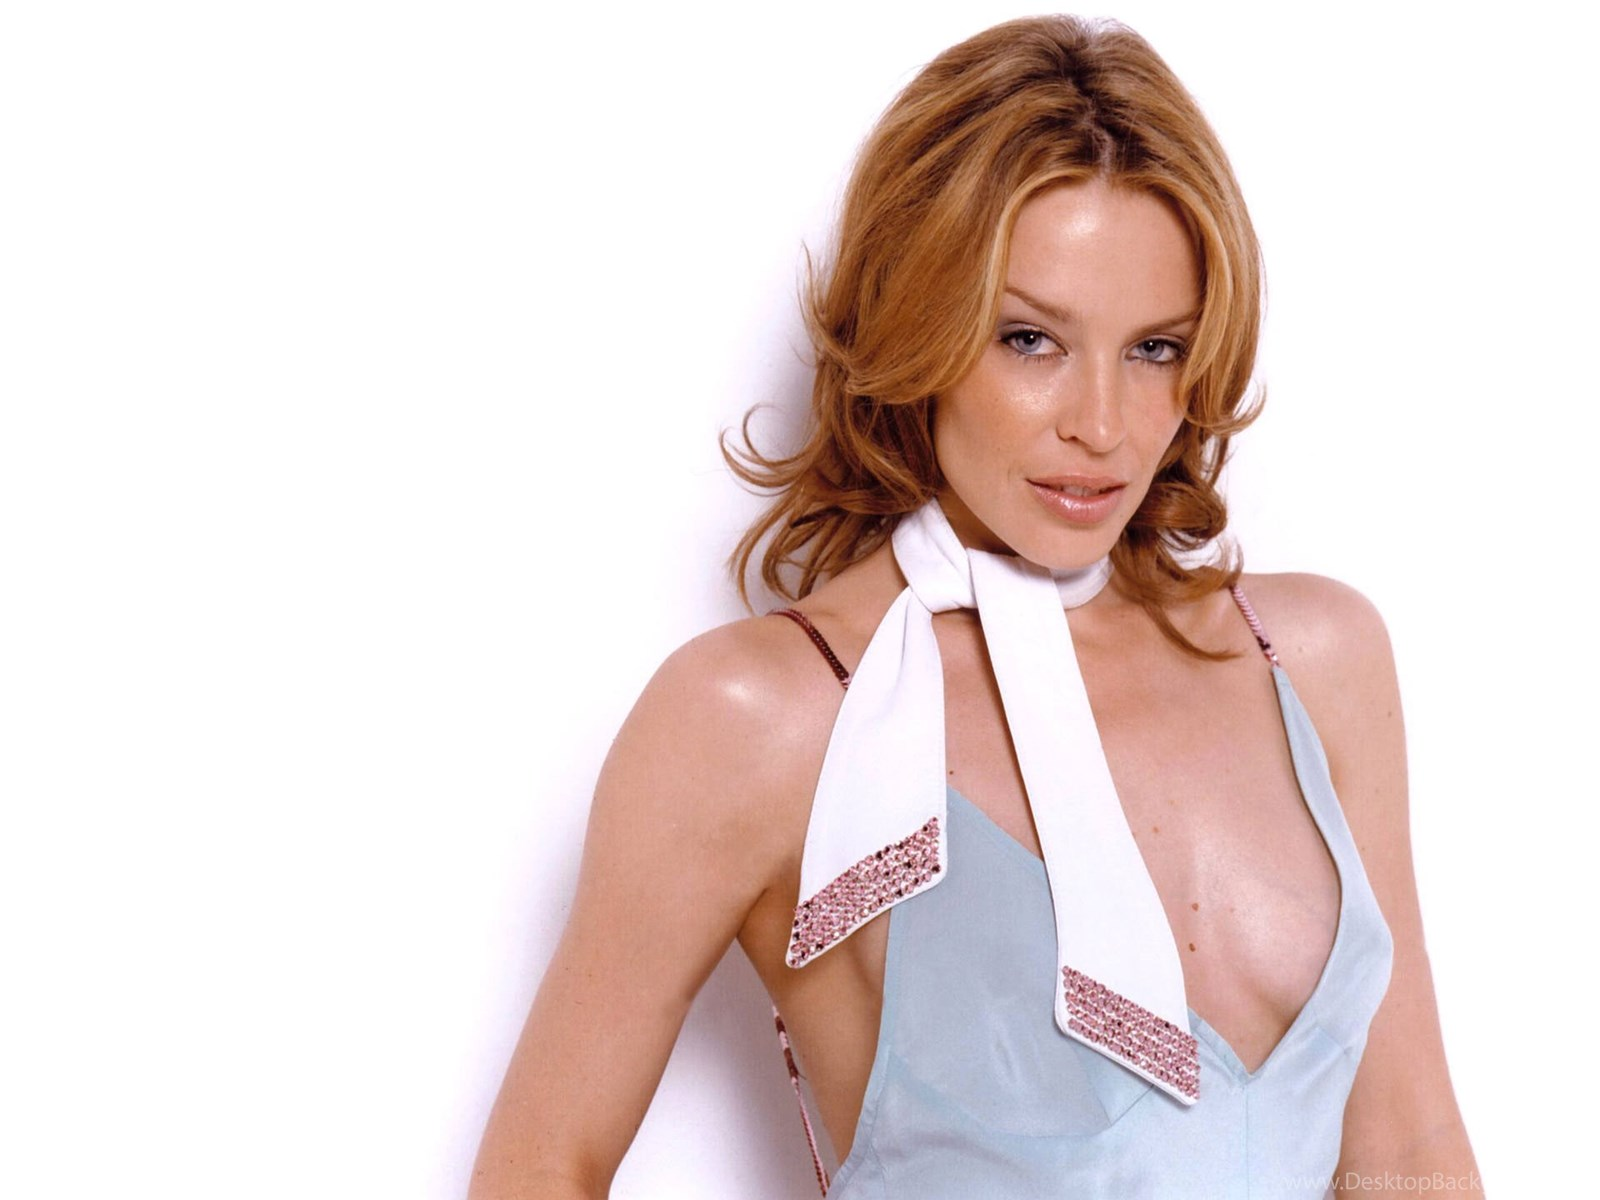 Kylie minogue nude, topless pictures, playboy photos, sex scene uncensored